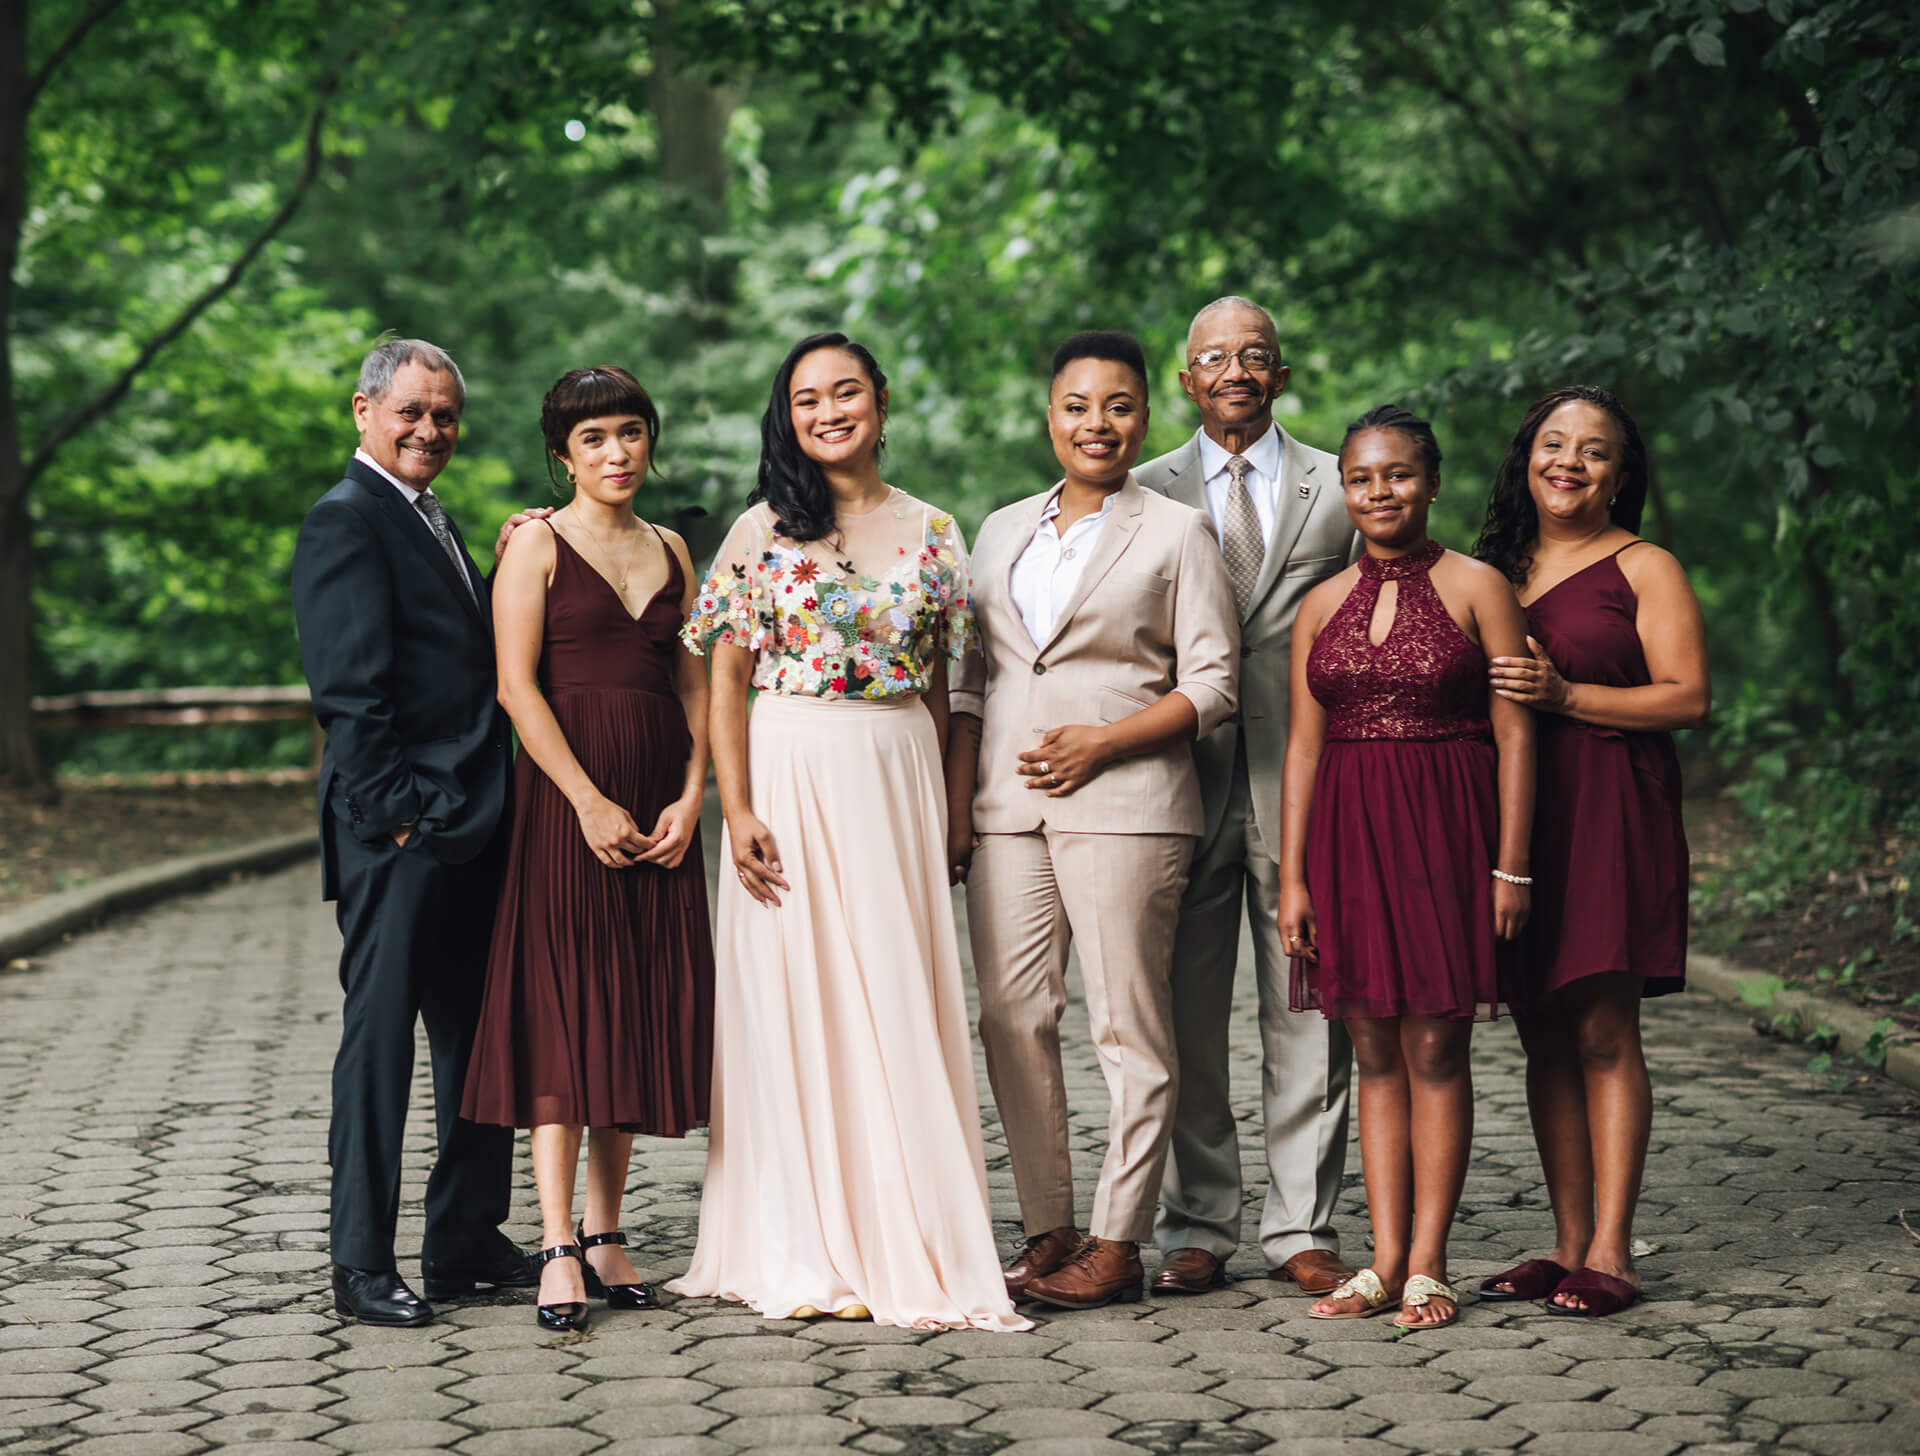 BROOKLYN SOCIETY FOR ETHICAL CULTURE - INTIMATE WEDDING - CHI-CHI ARI-131 (1).jpg